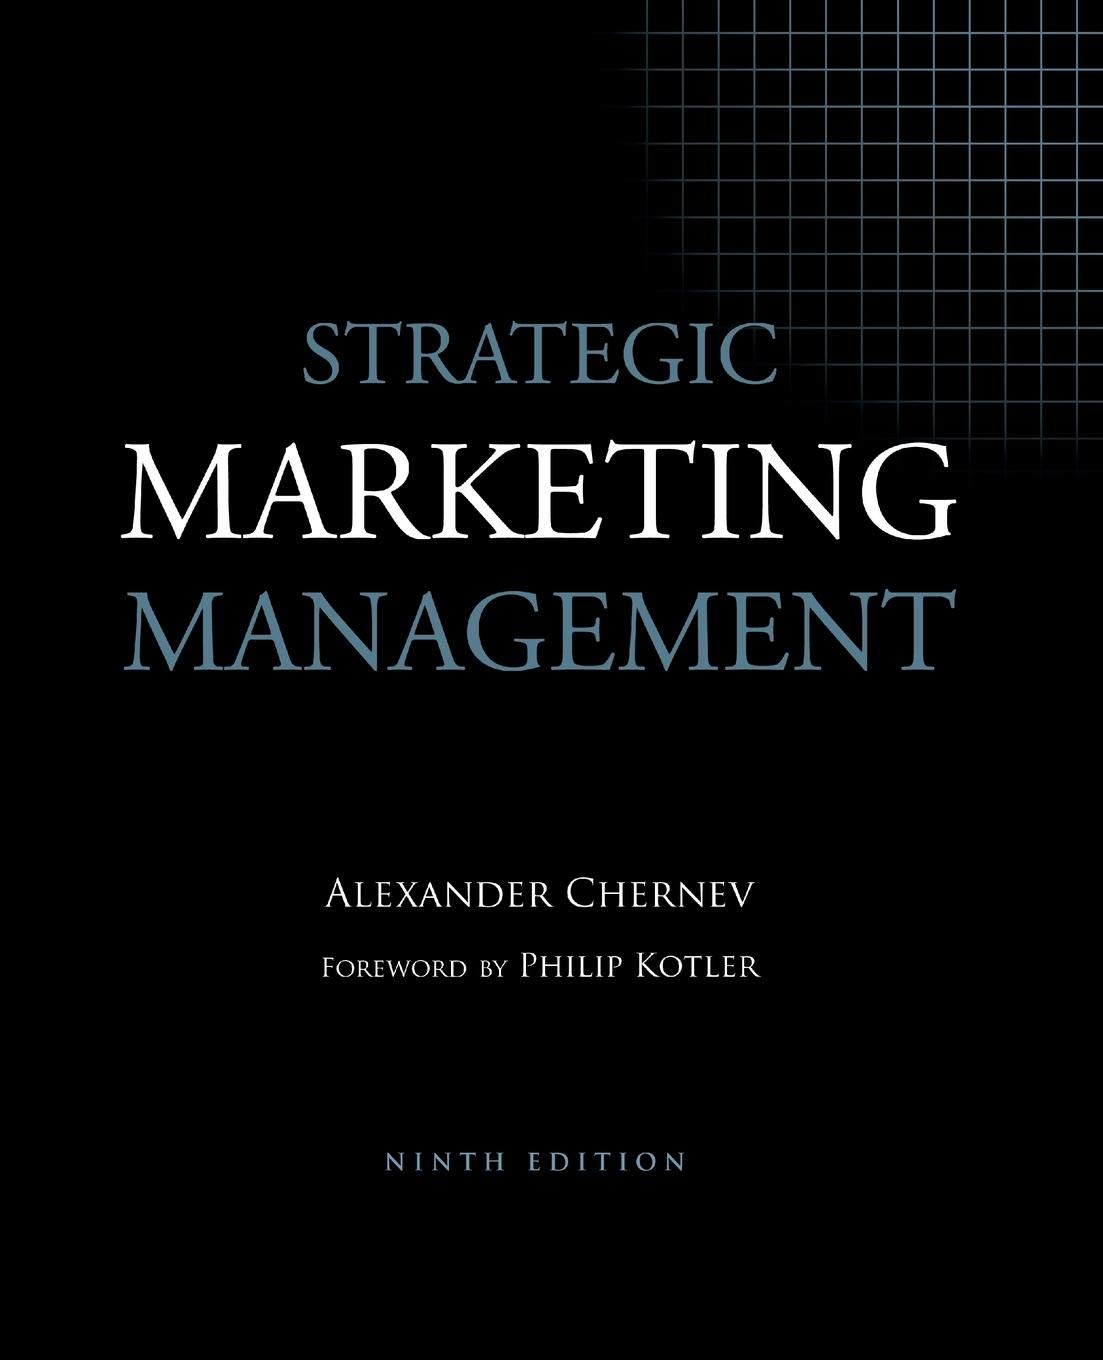 Strategic Marketing Management, 9th Edition by Cerebellum Press